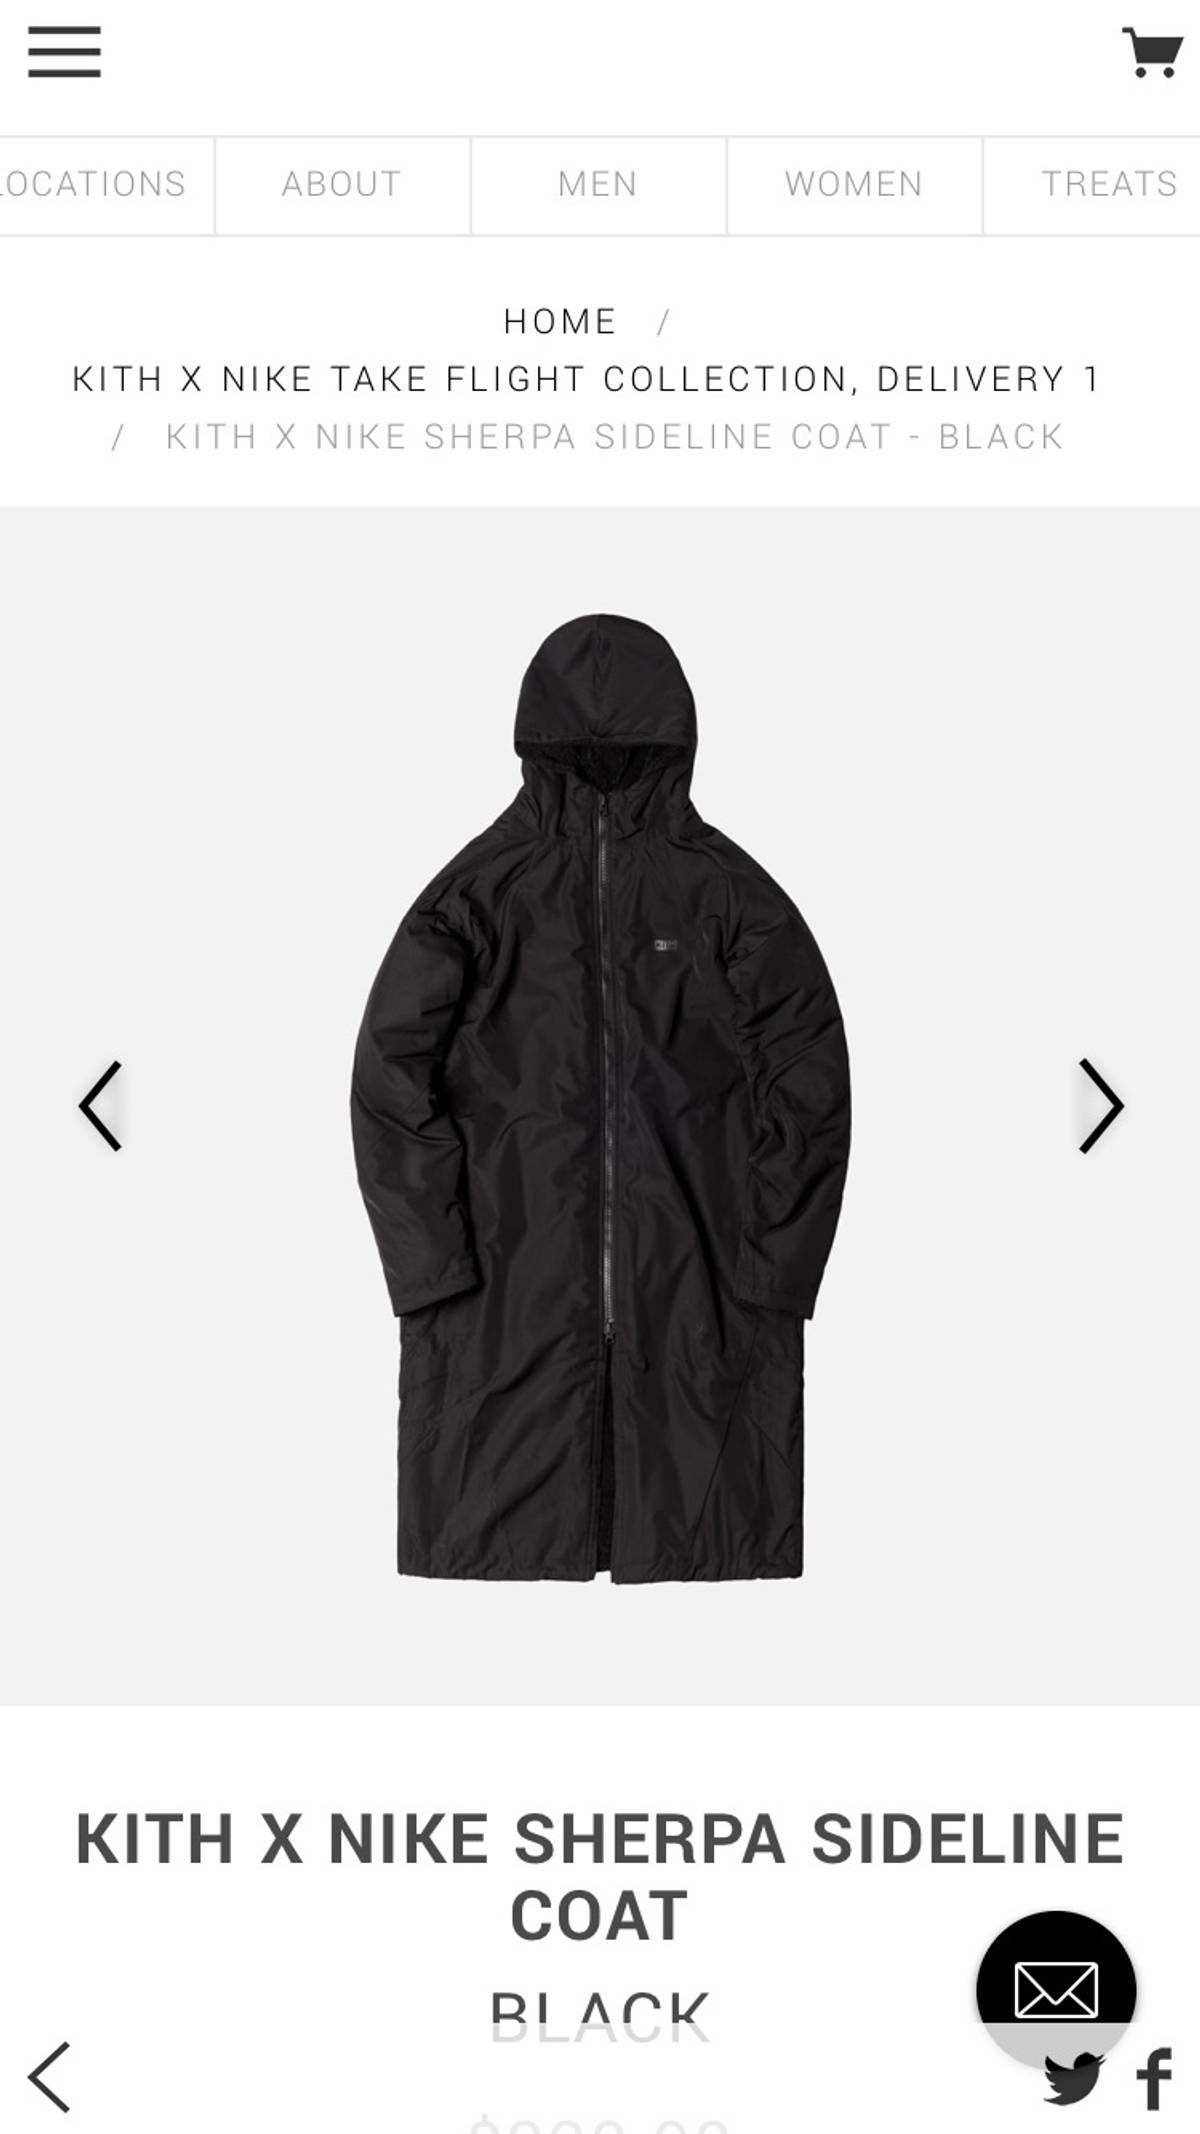 f98586d83 Kith Nyc Kith X Nike Sherpa Sideline Coat Size L $283